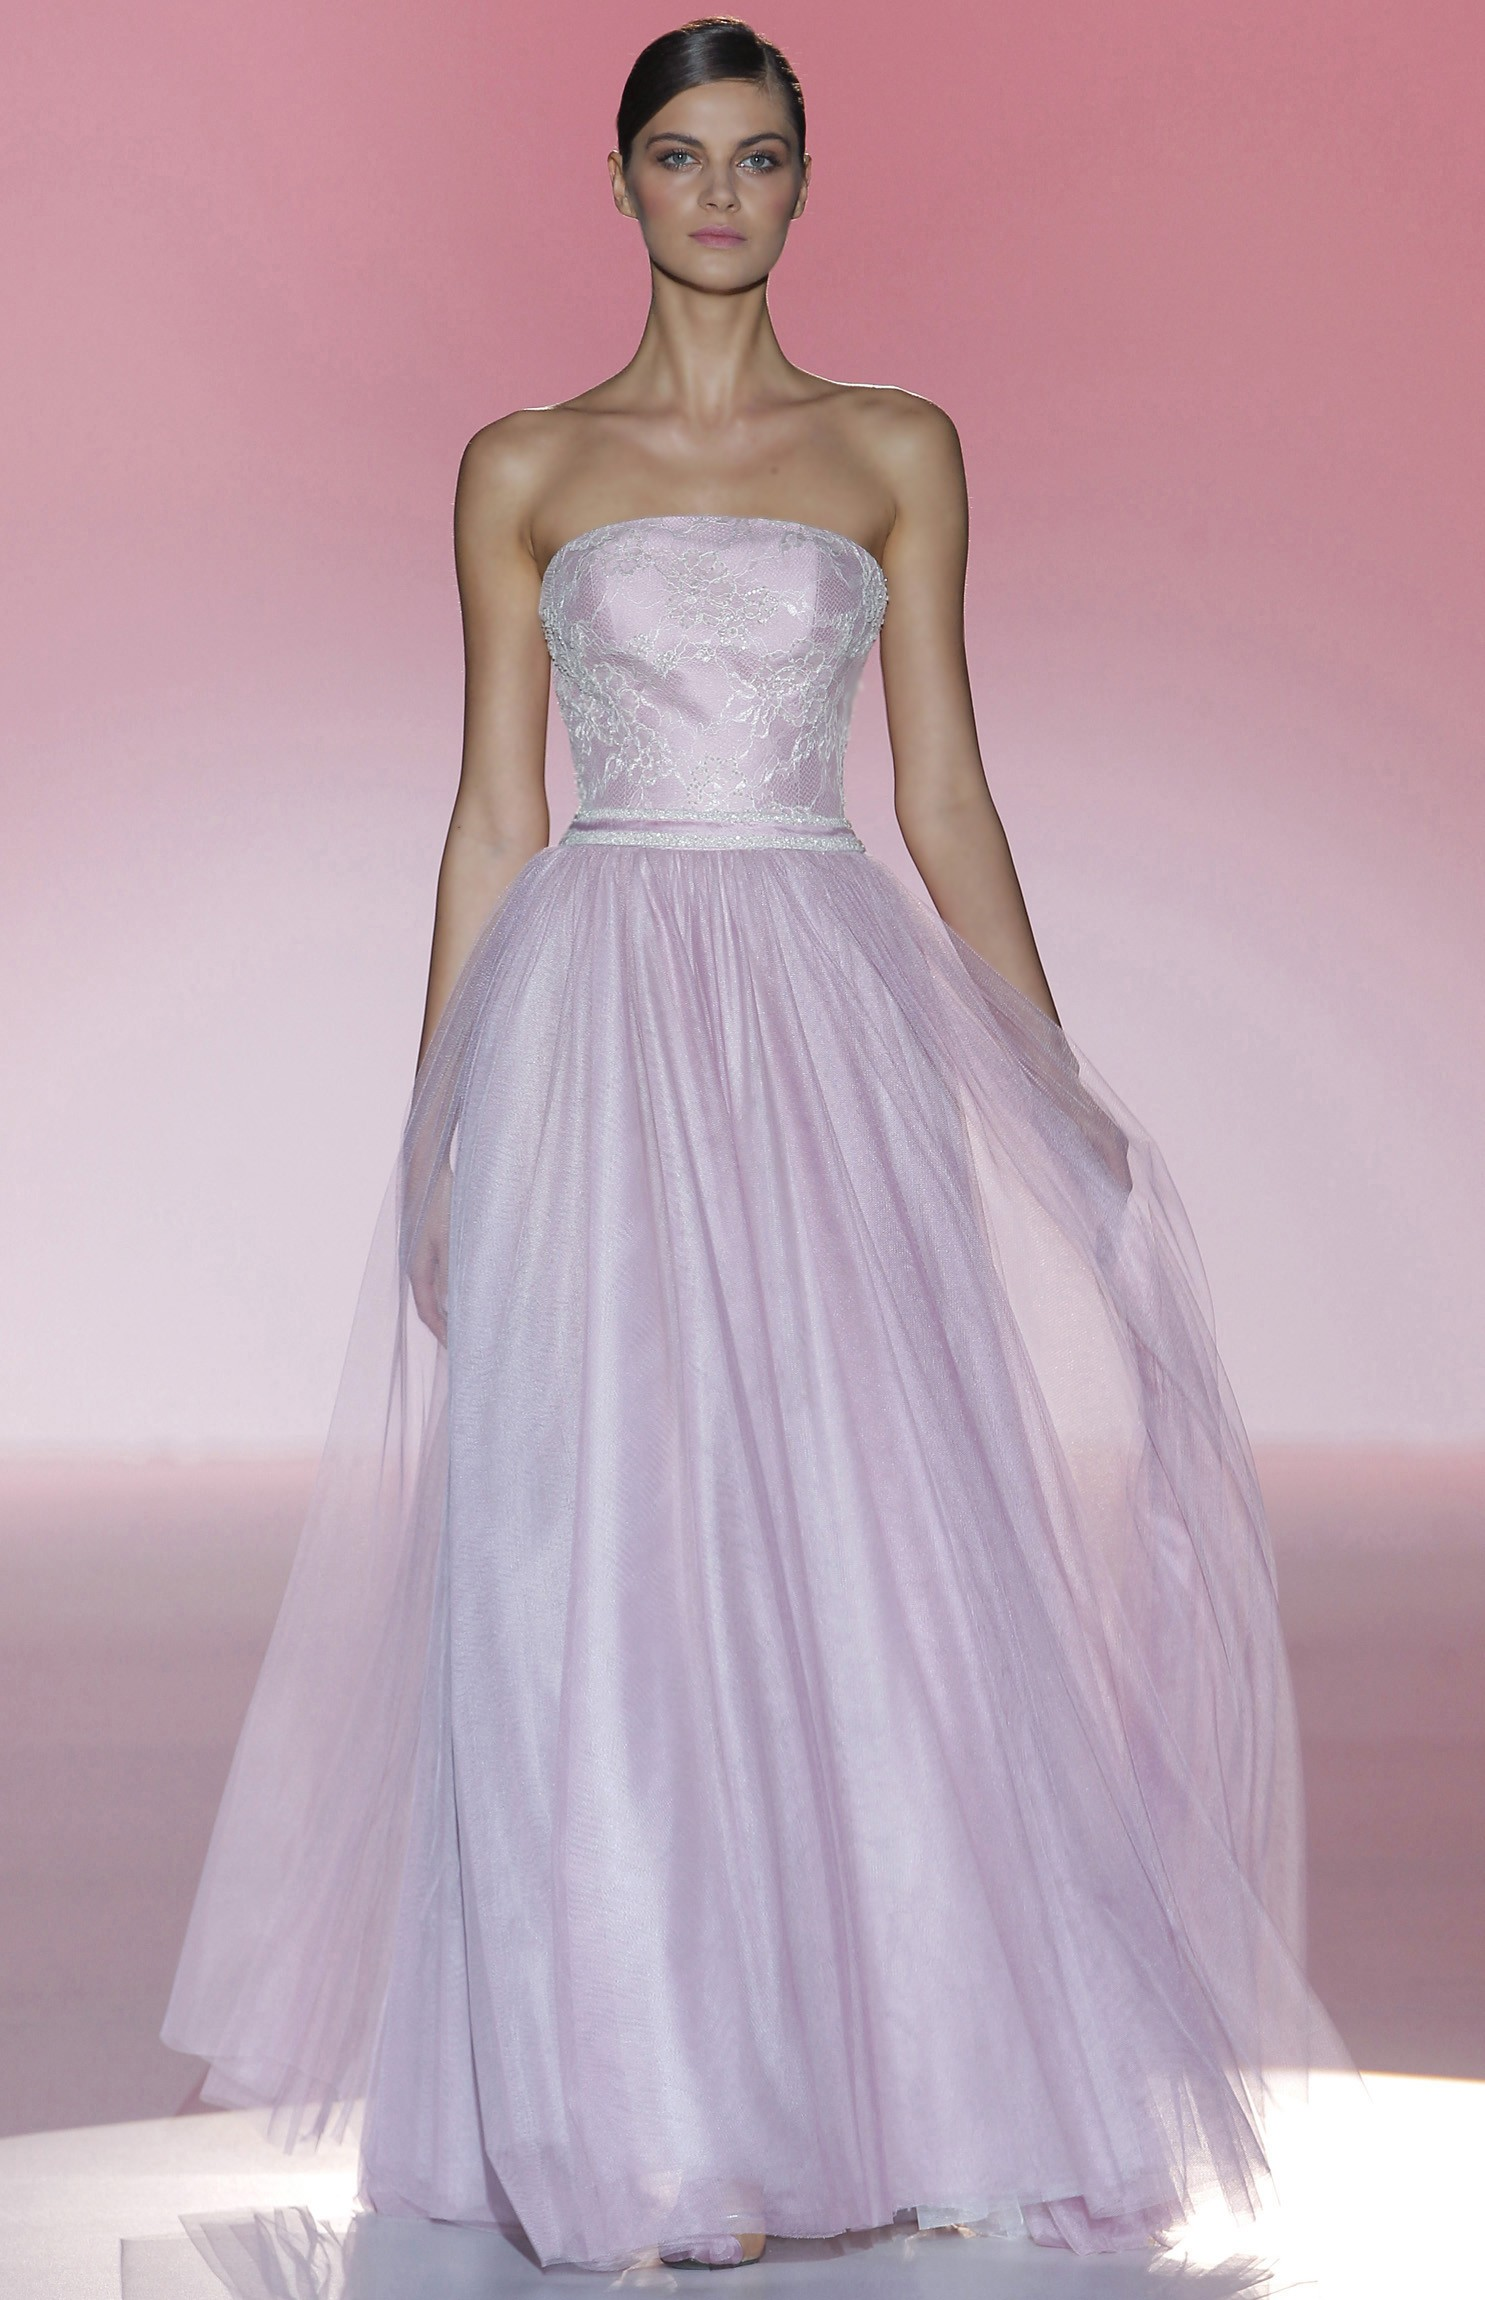 Couture Bridal Collection 2015 Wedding Dresses By Hannibal Laguna